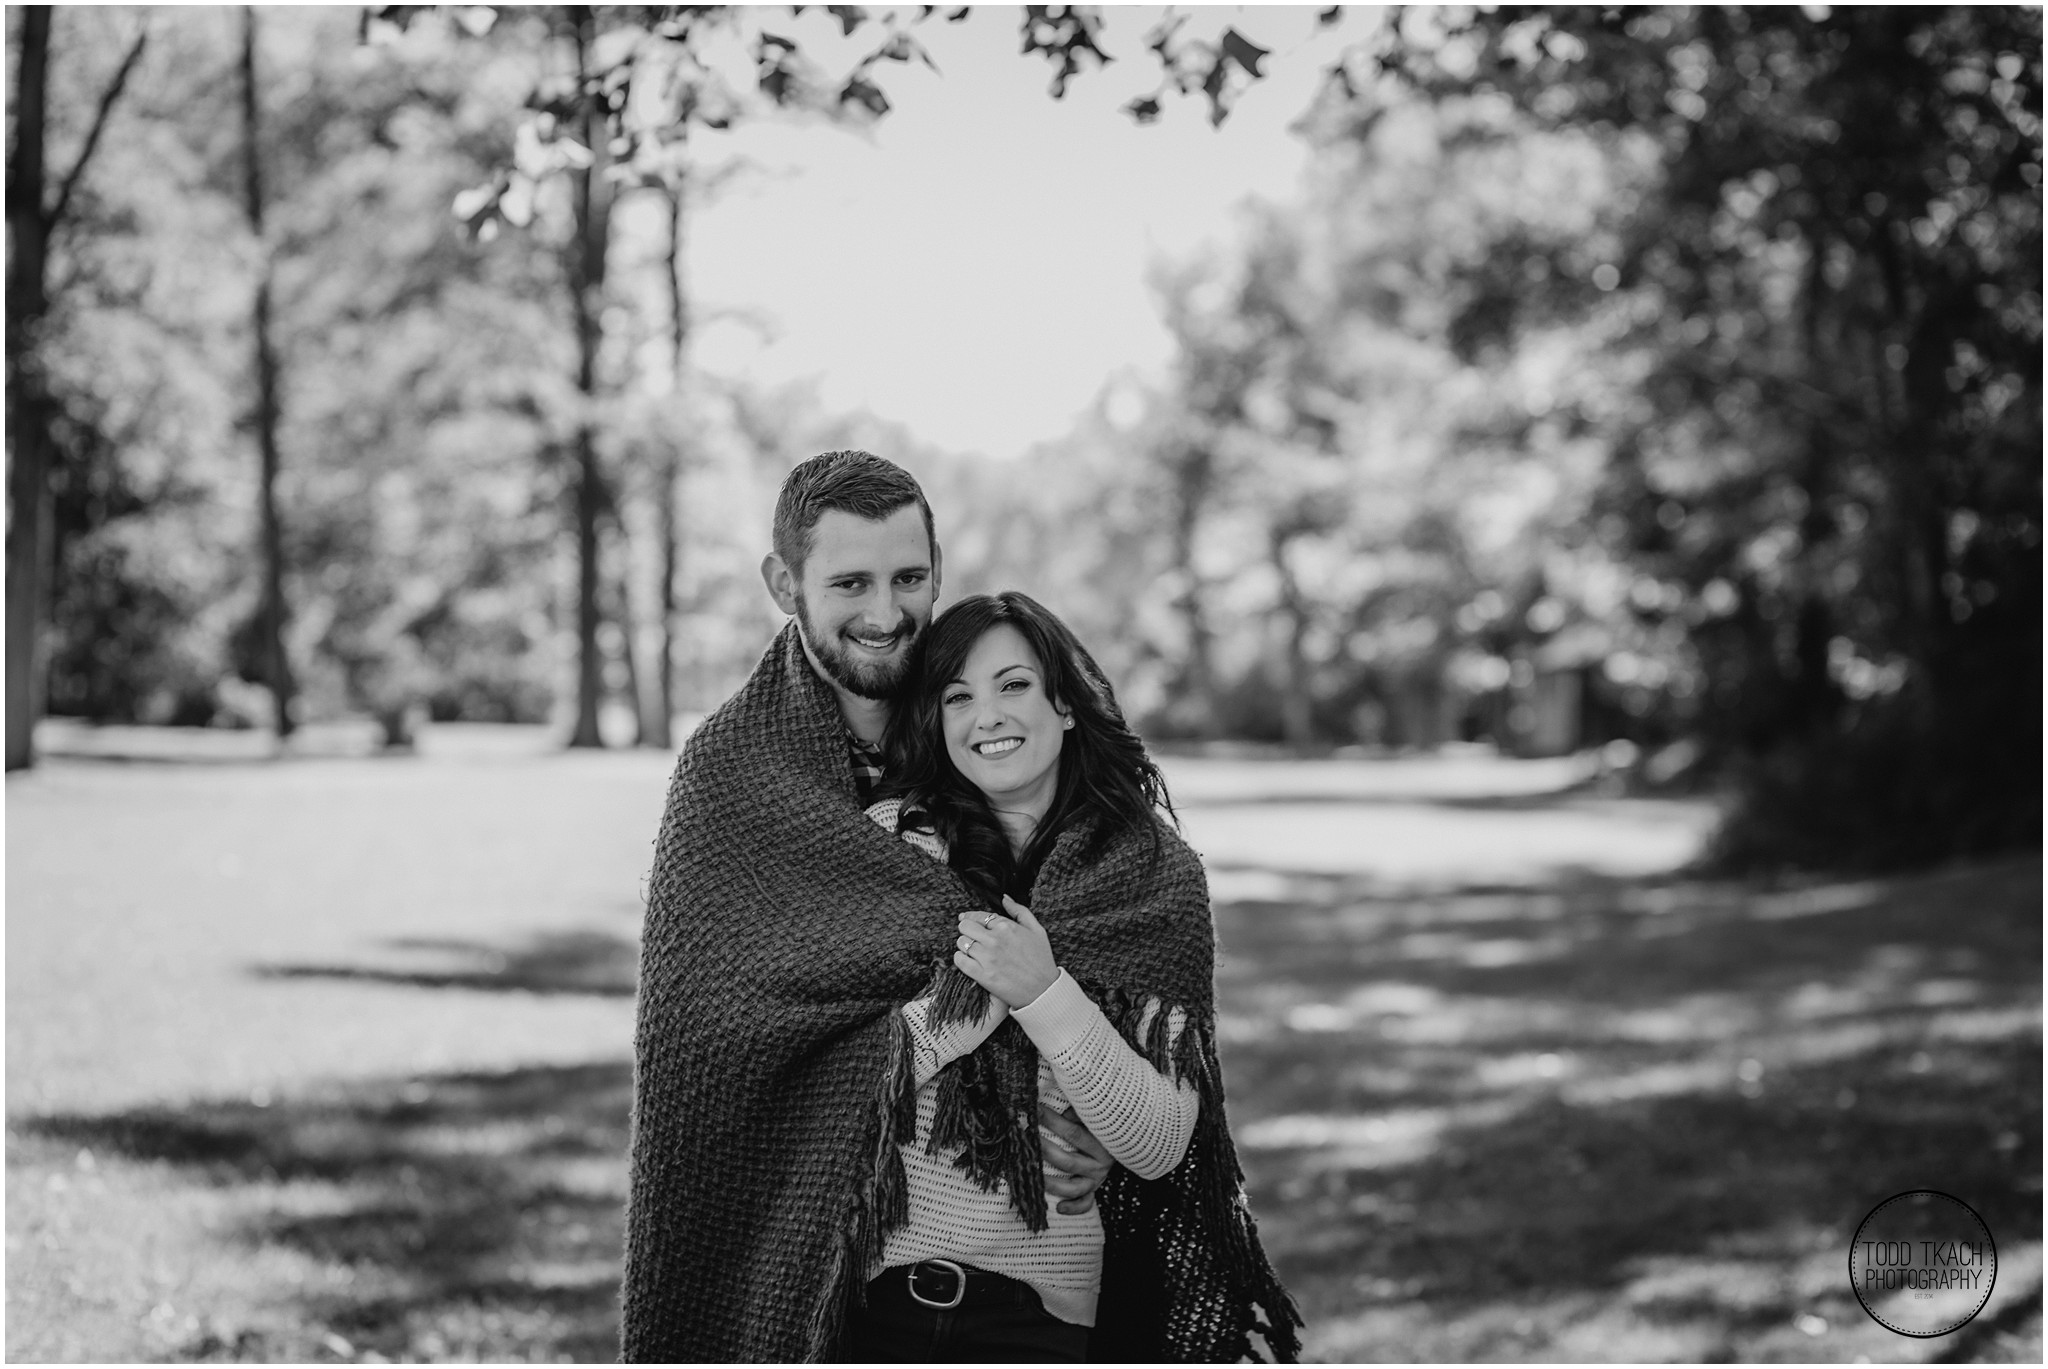 Jessica & Todd Engagement Wrapped Up B&W